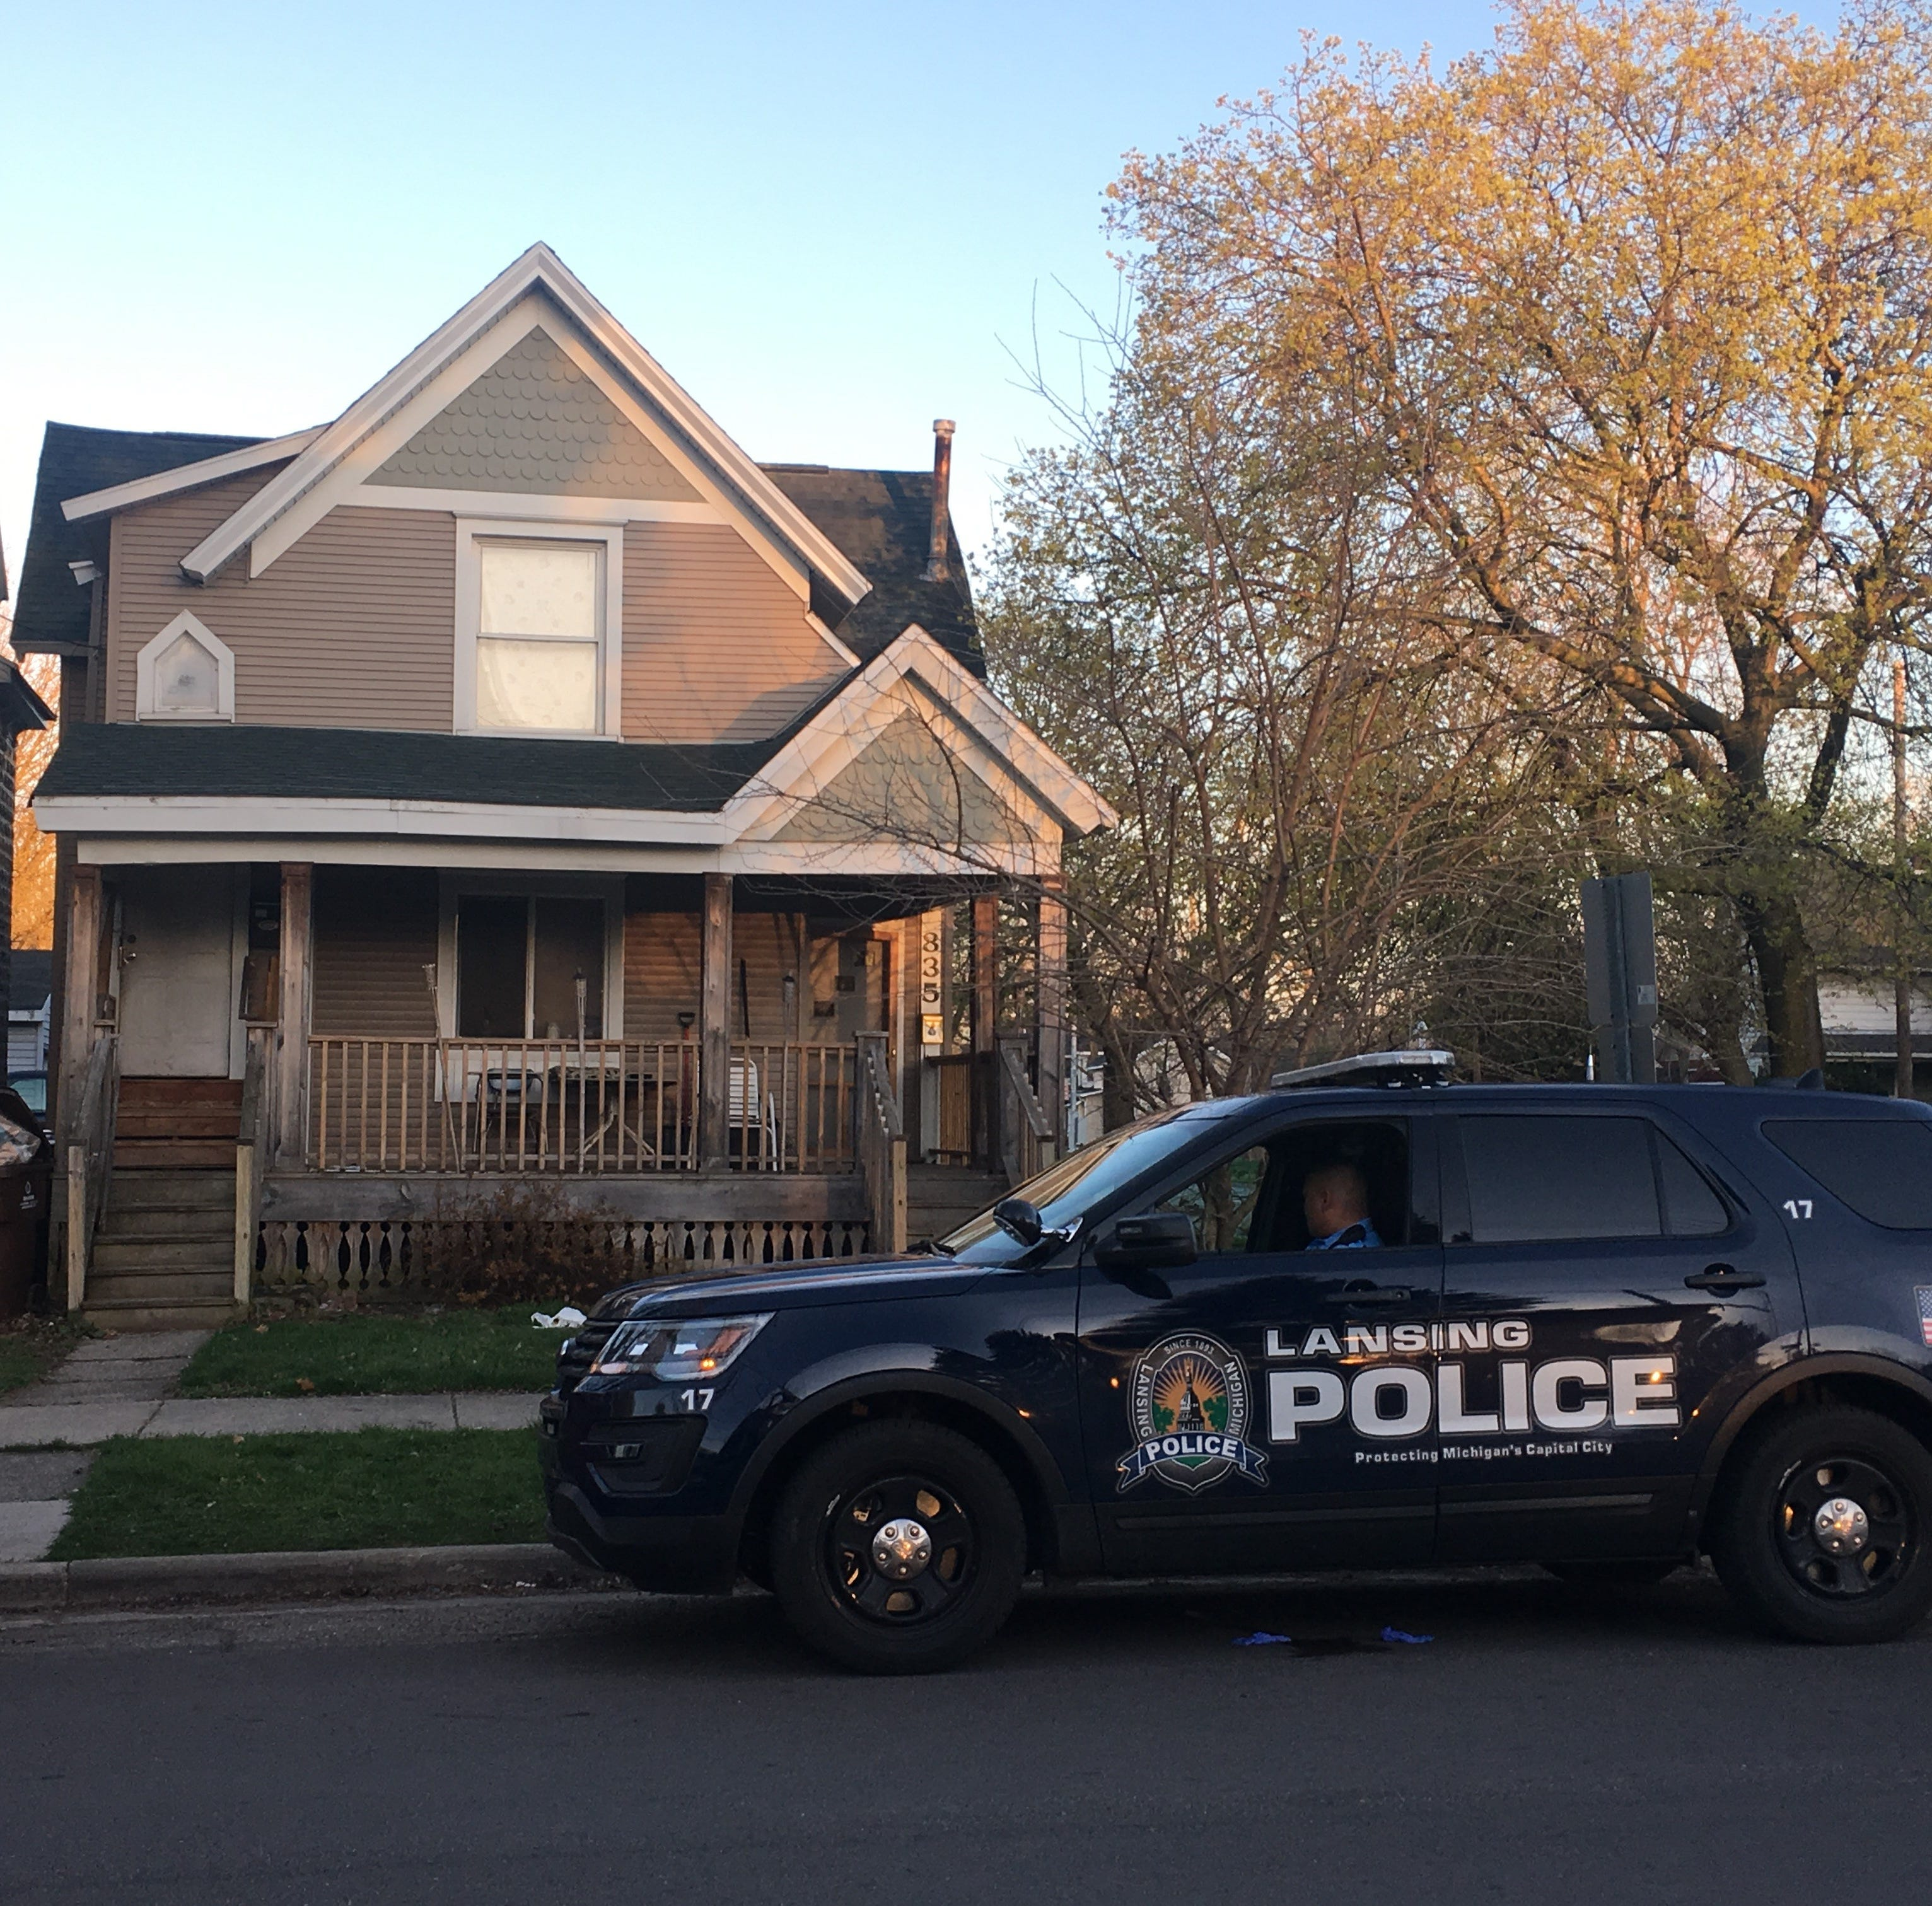 Police: 2 men wounded in Lansing shooting stemming from argument